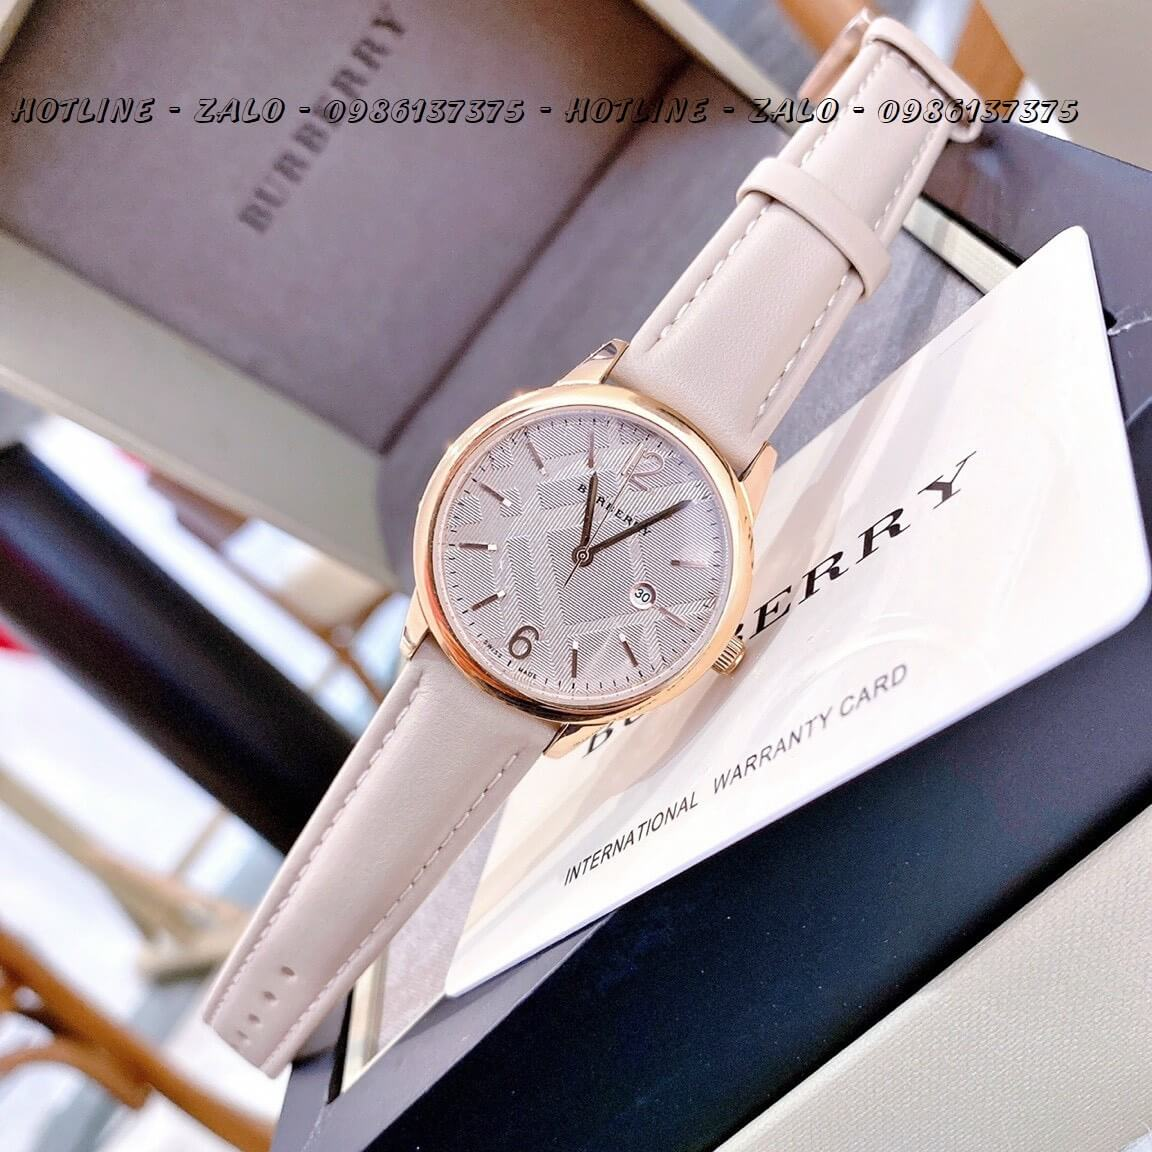 Đồng Hồ Burberry Nữ Dây Da Nude Rose Gold 32mm